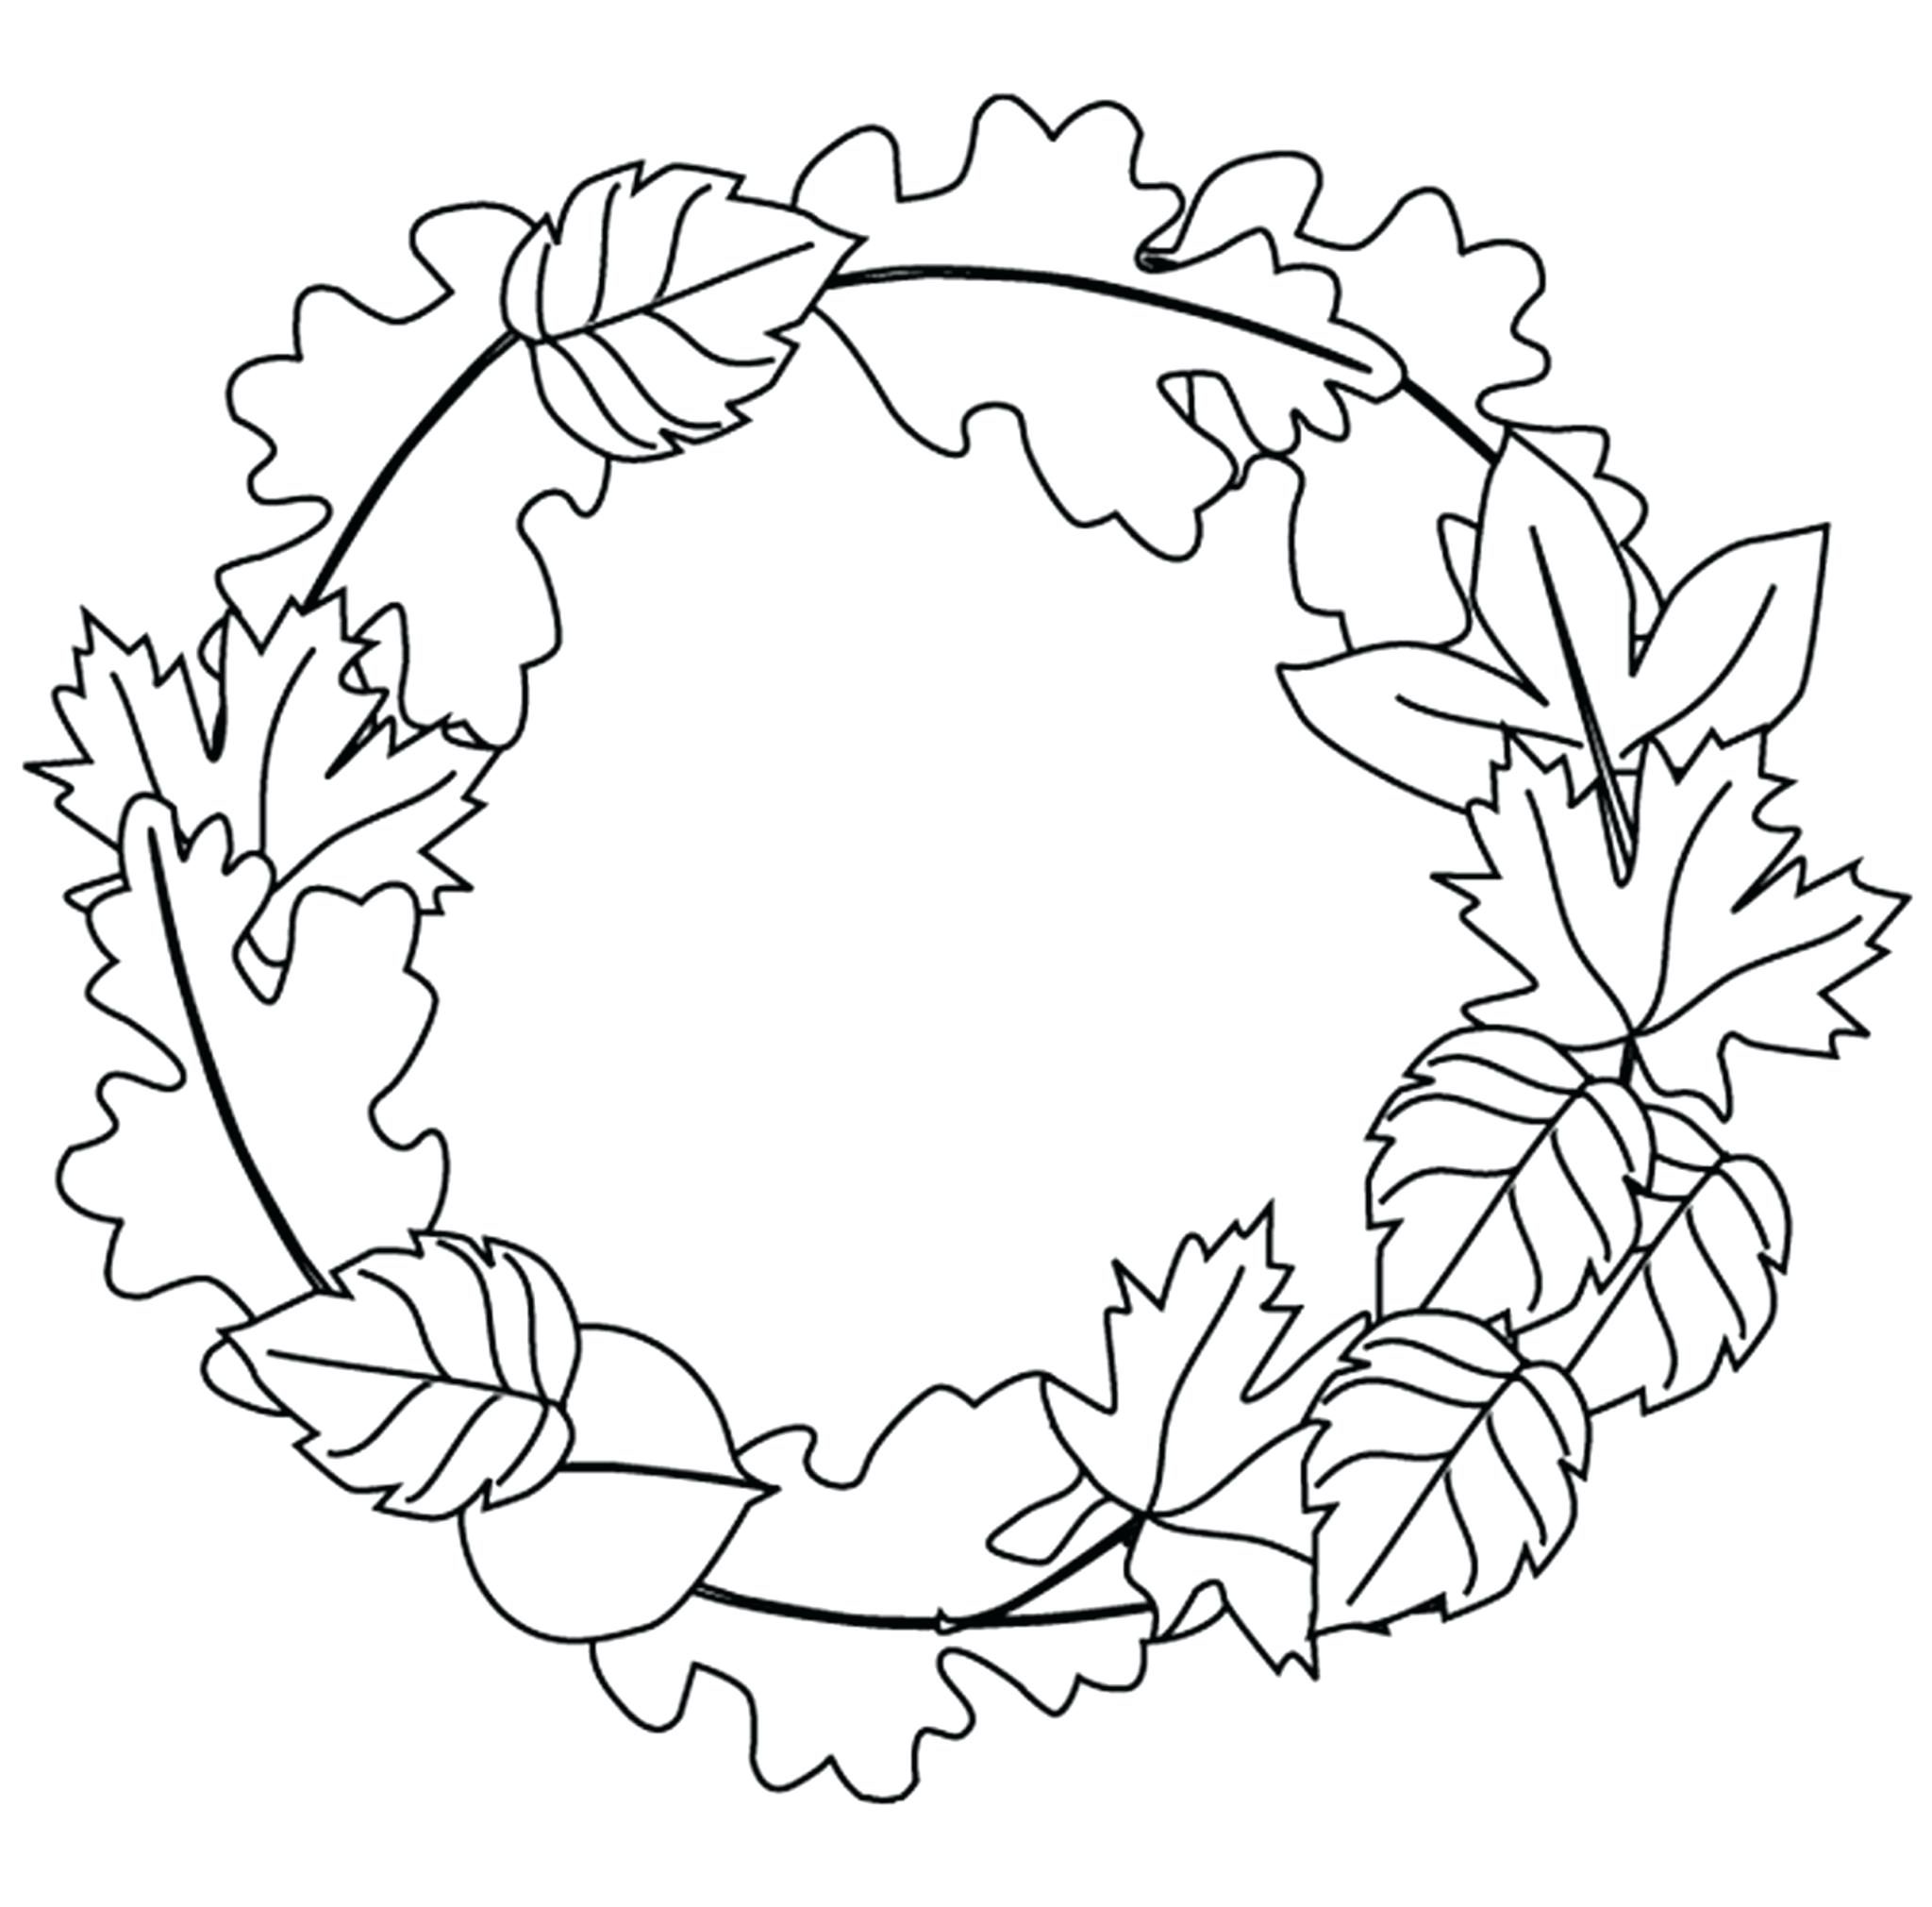 Fall Leaves Coloring Pages For Kindergarten At Getdrawings